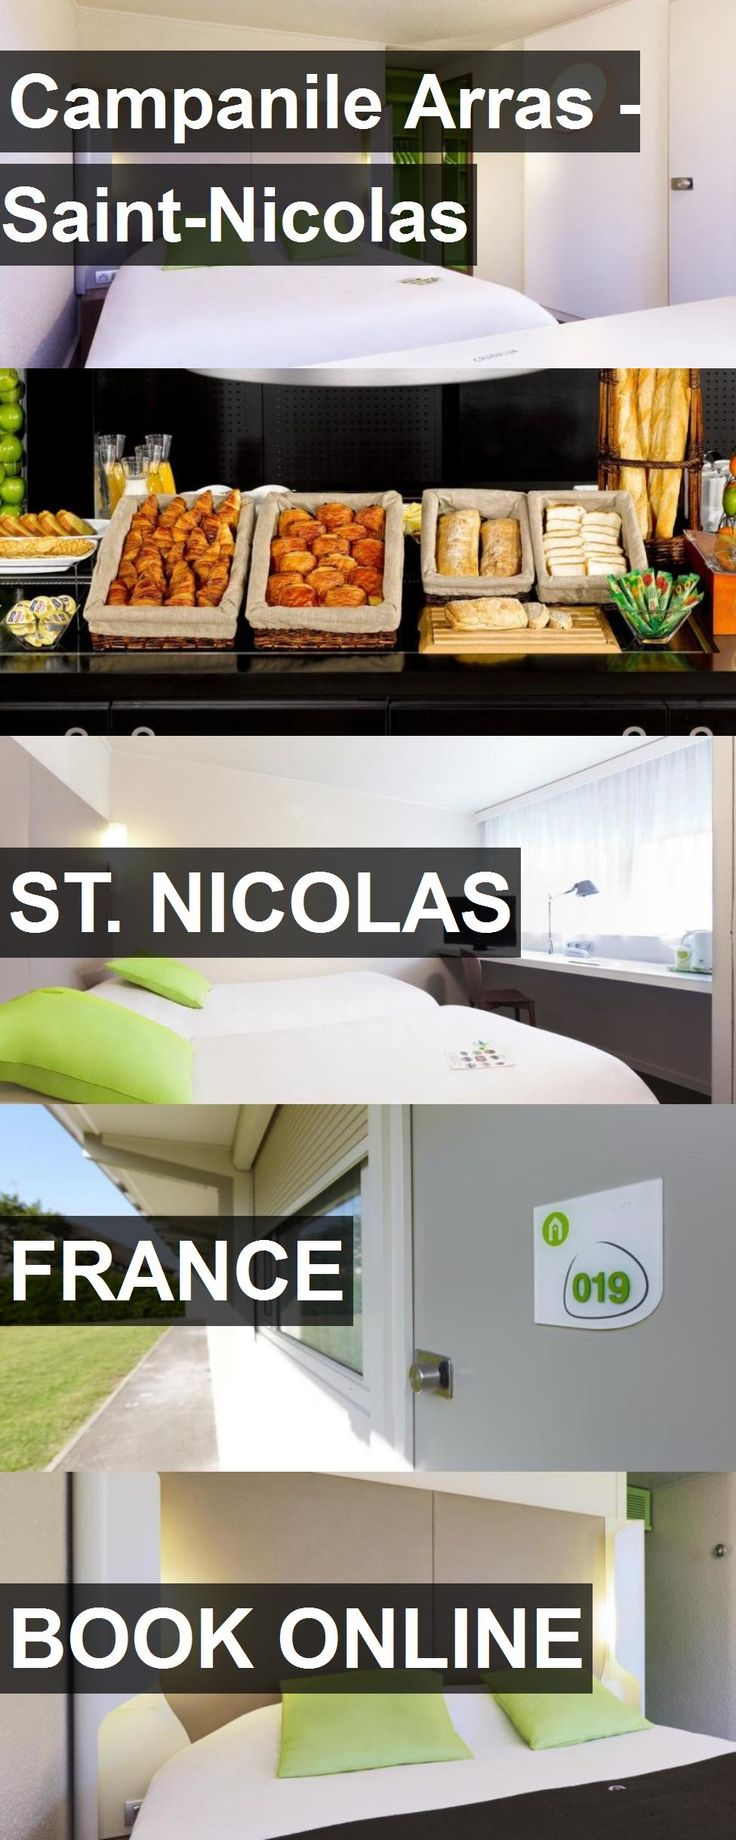 Hotel Campanile Arras - Saint-Nicolas in St. Nicolas, France. For more information, photos, reviews and best prices please follow the link. #France #St.Nicolas #travel #vacation #hotel